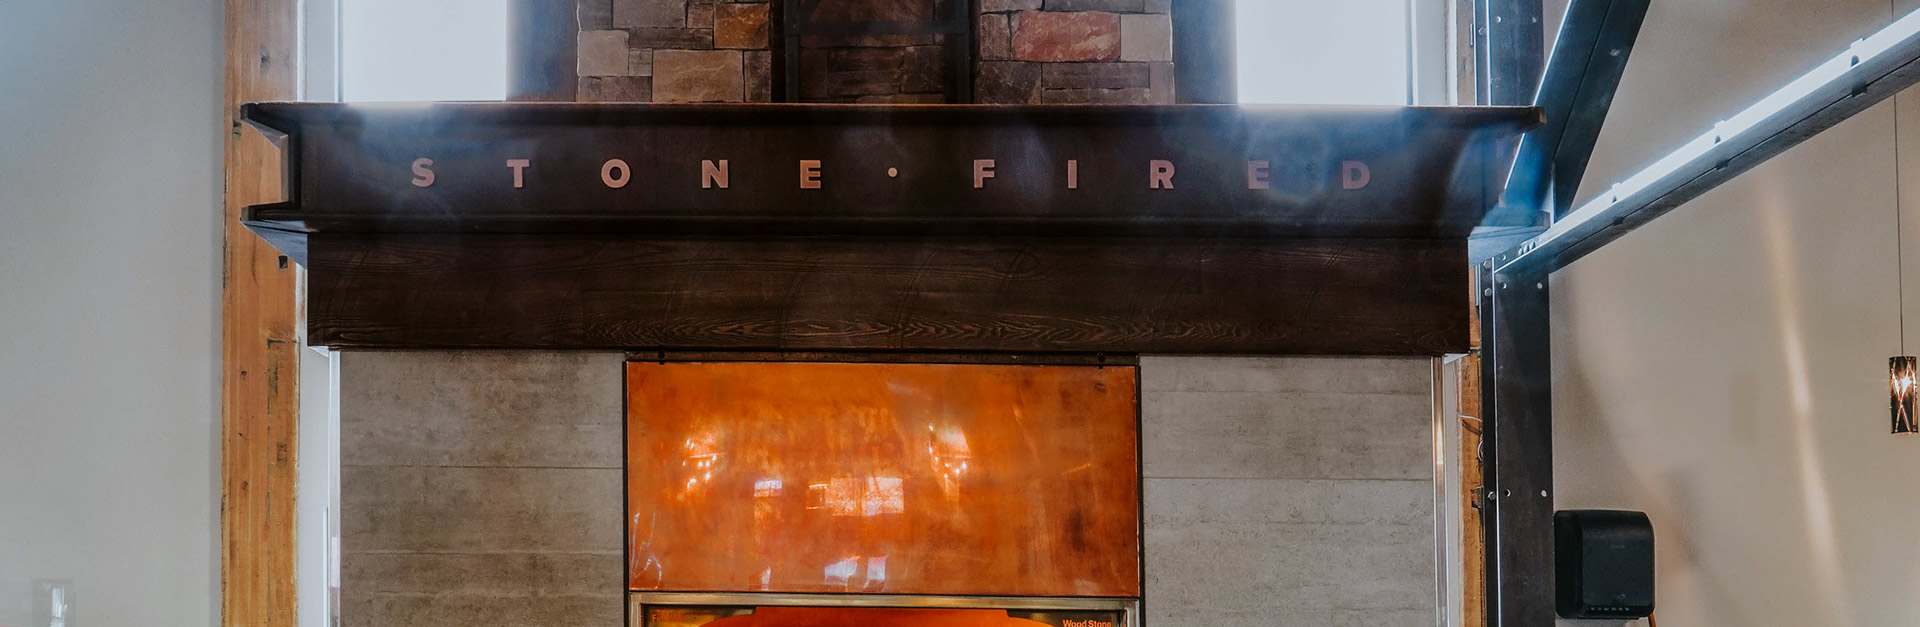 Stone Fired Pizza sign over a blazing stone oven